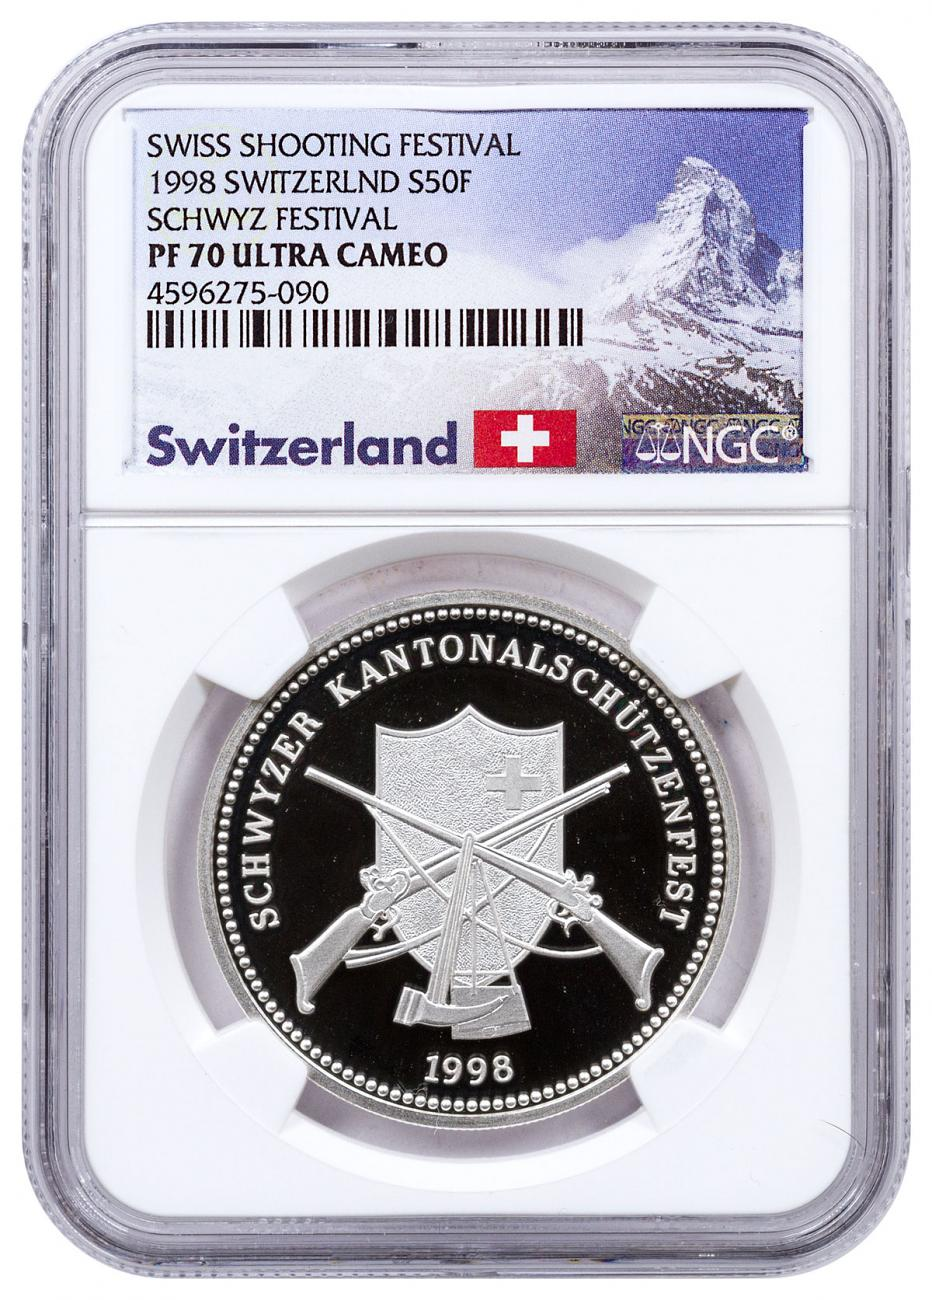 1998 Switzerland Shooting Festival Thaler - Schwyz Silver Proof Fr.50 Coin NGC PF70 UC Exclusive Switzerland Label